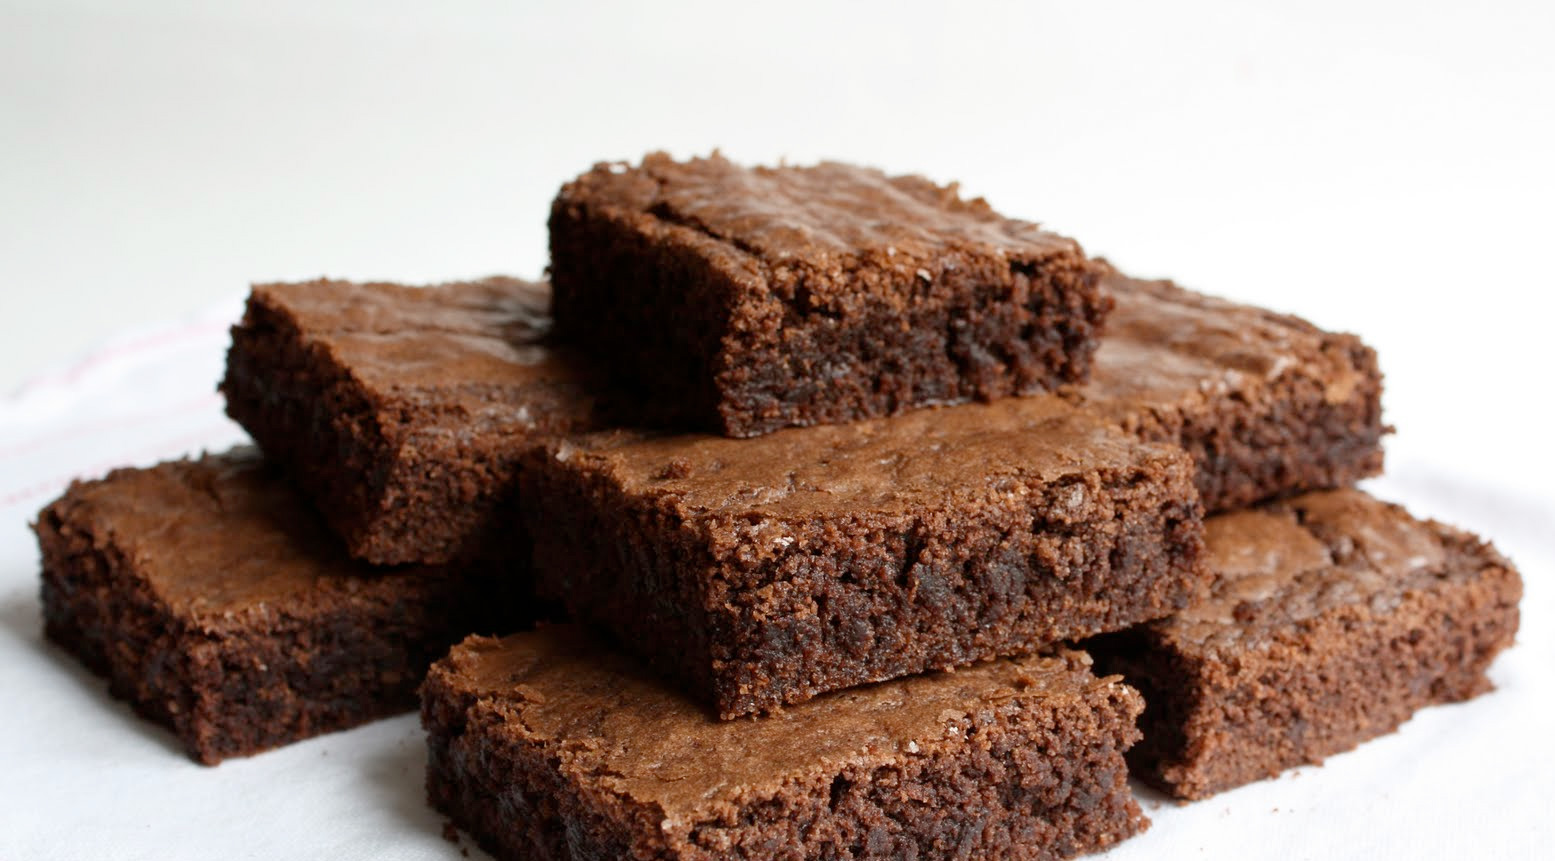 Those brownies were delicious but…